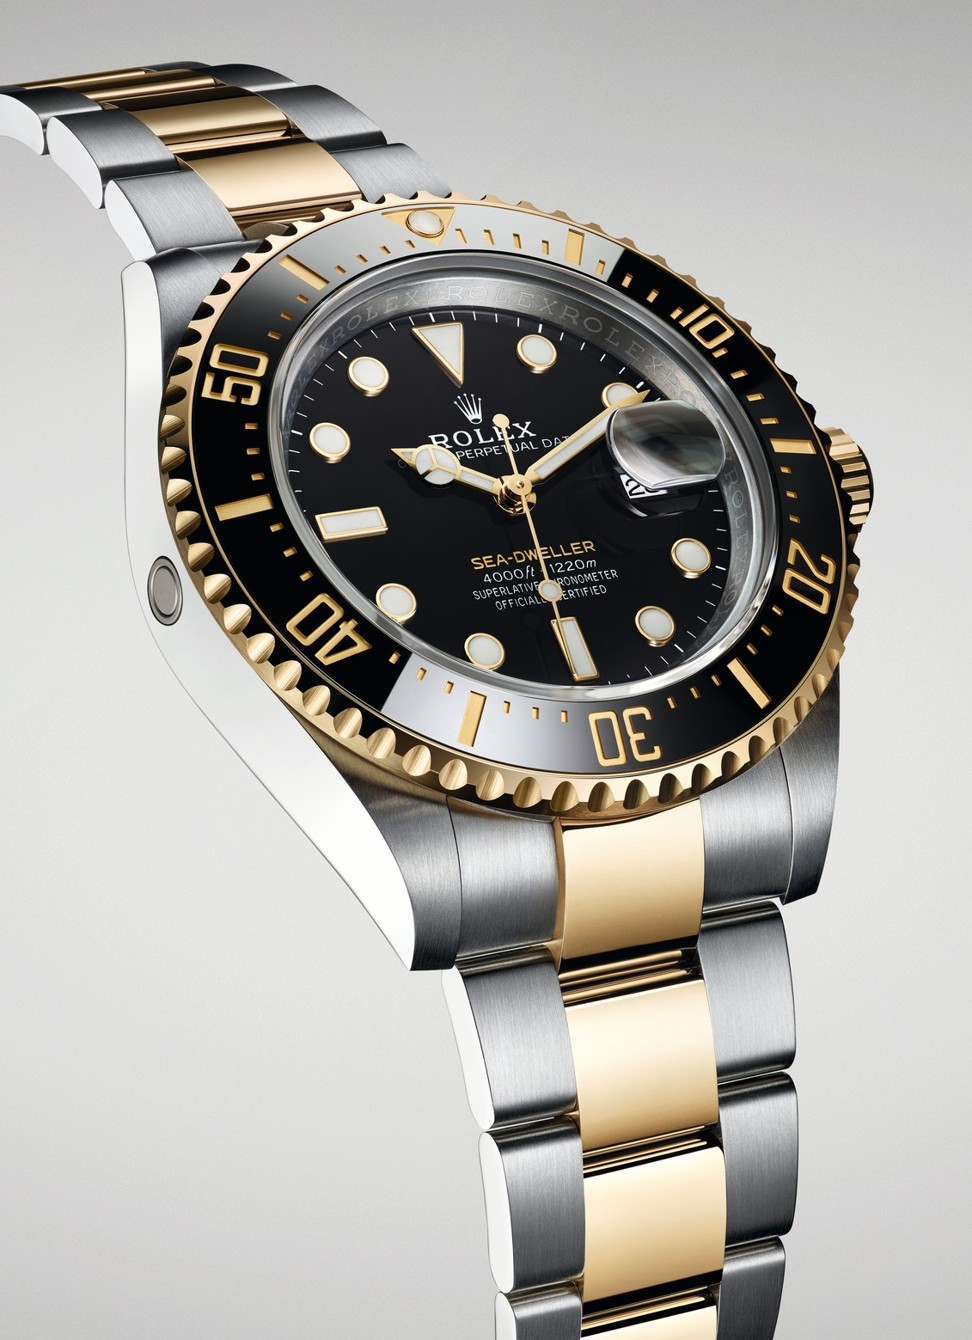 Rolex Oyster Perpetual Sea-Dweller Yellow Rolesor